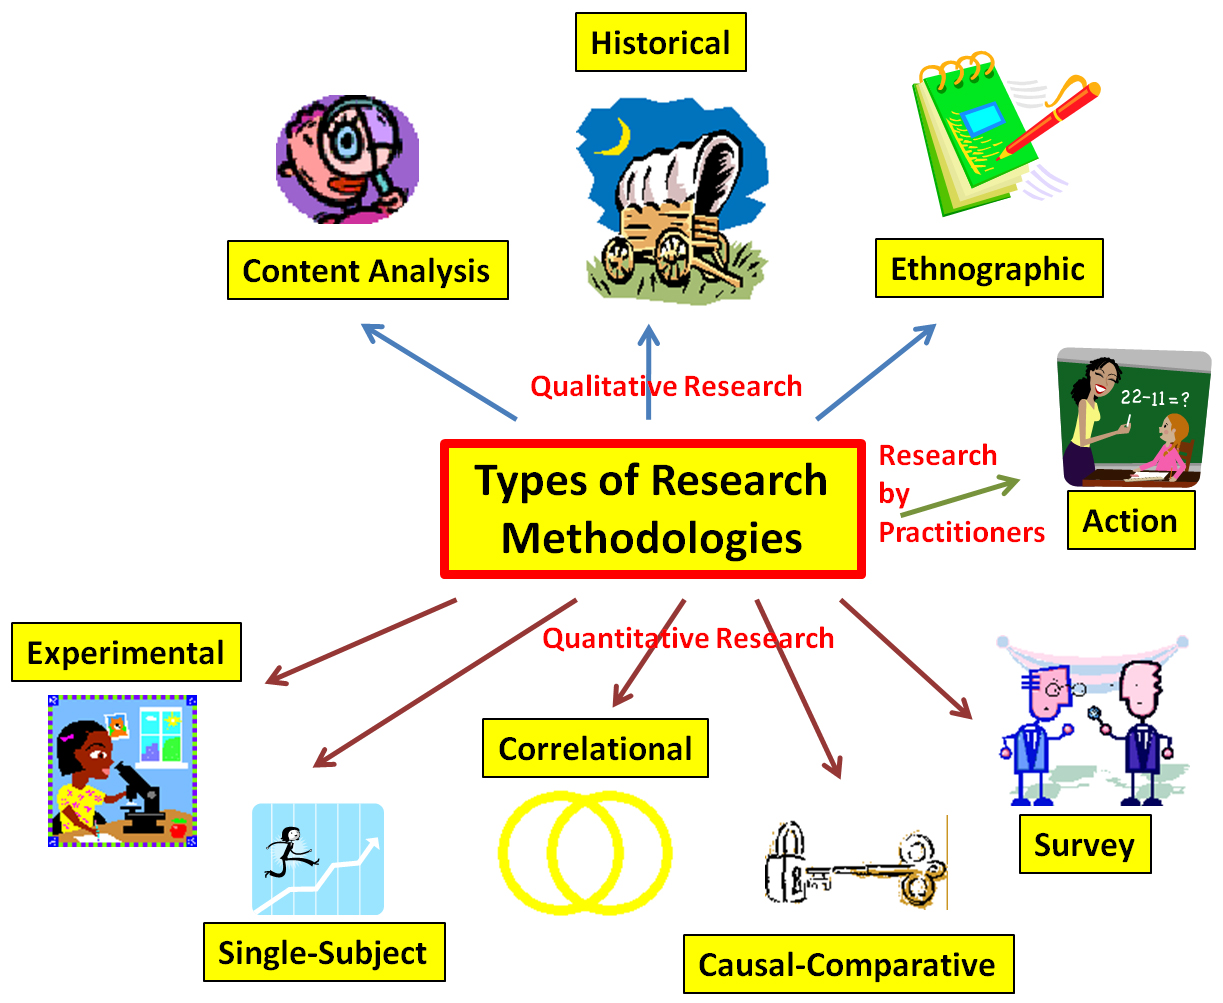 research methodologies Clarke, r j (2005) research methodologies: 2 agenda definition of research research paradigms (aka research philosophy or research model) specifying concepts- phenomena of interest as defined in model, and statements- propositions involving concepts theories, methods and application domains classes of research methodologies that have emerged as a consequence of conducting similar.